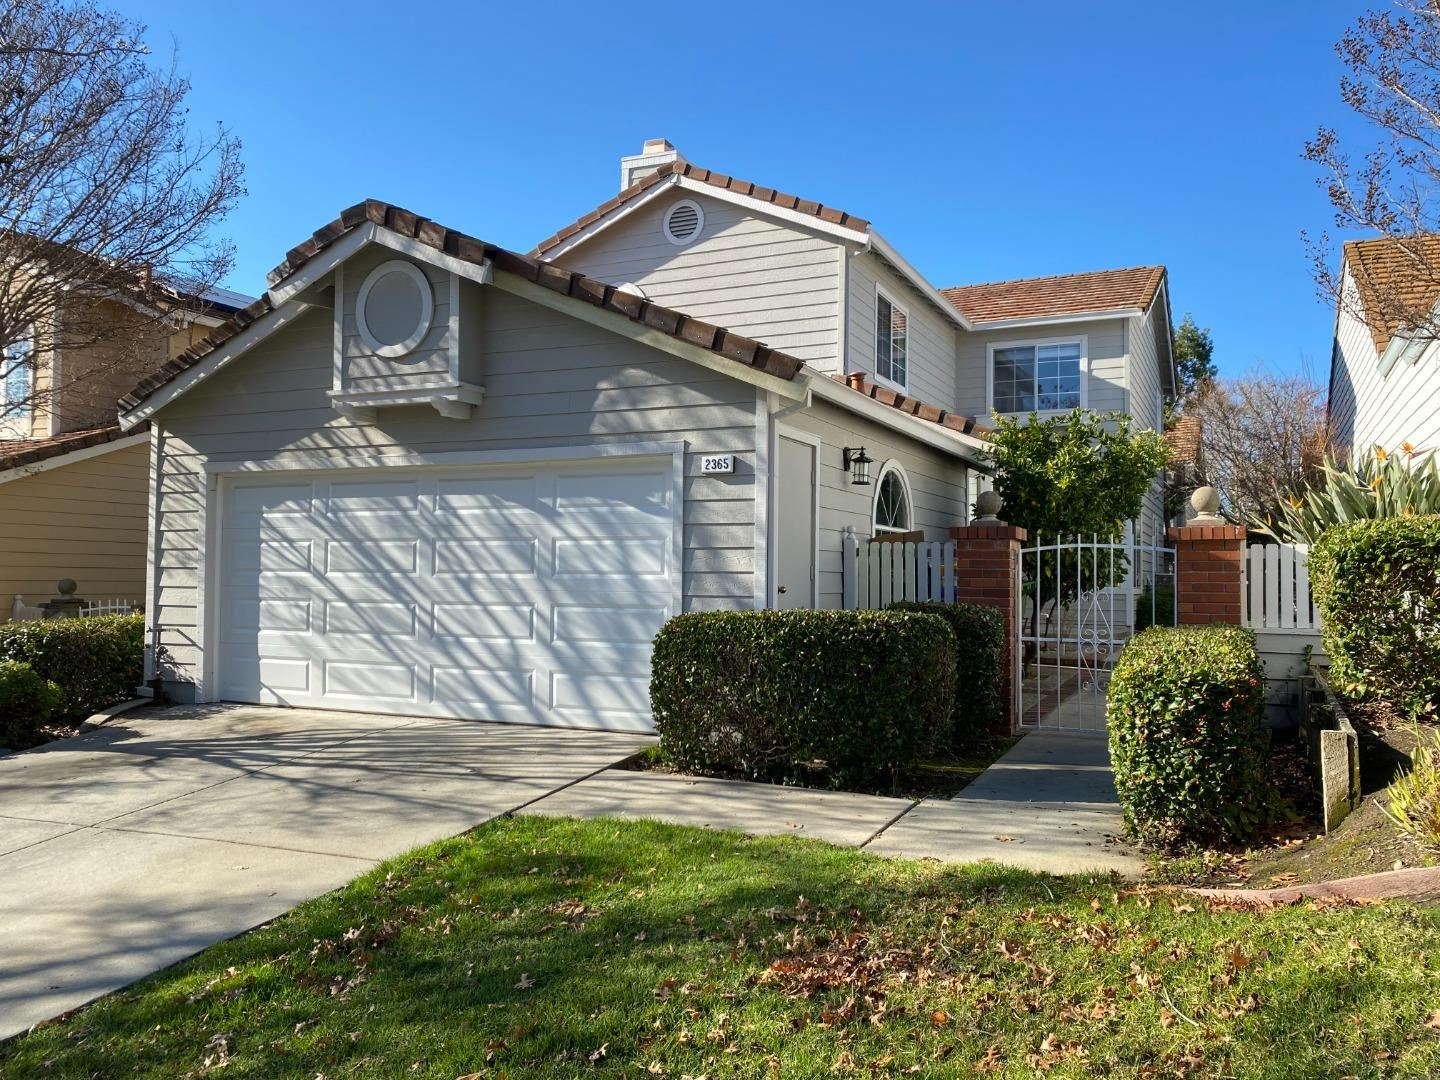 Photo for 2365 Dubois ST, MILPITAS, CA 95035 (MLS # ML81829545)